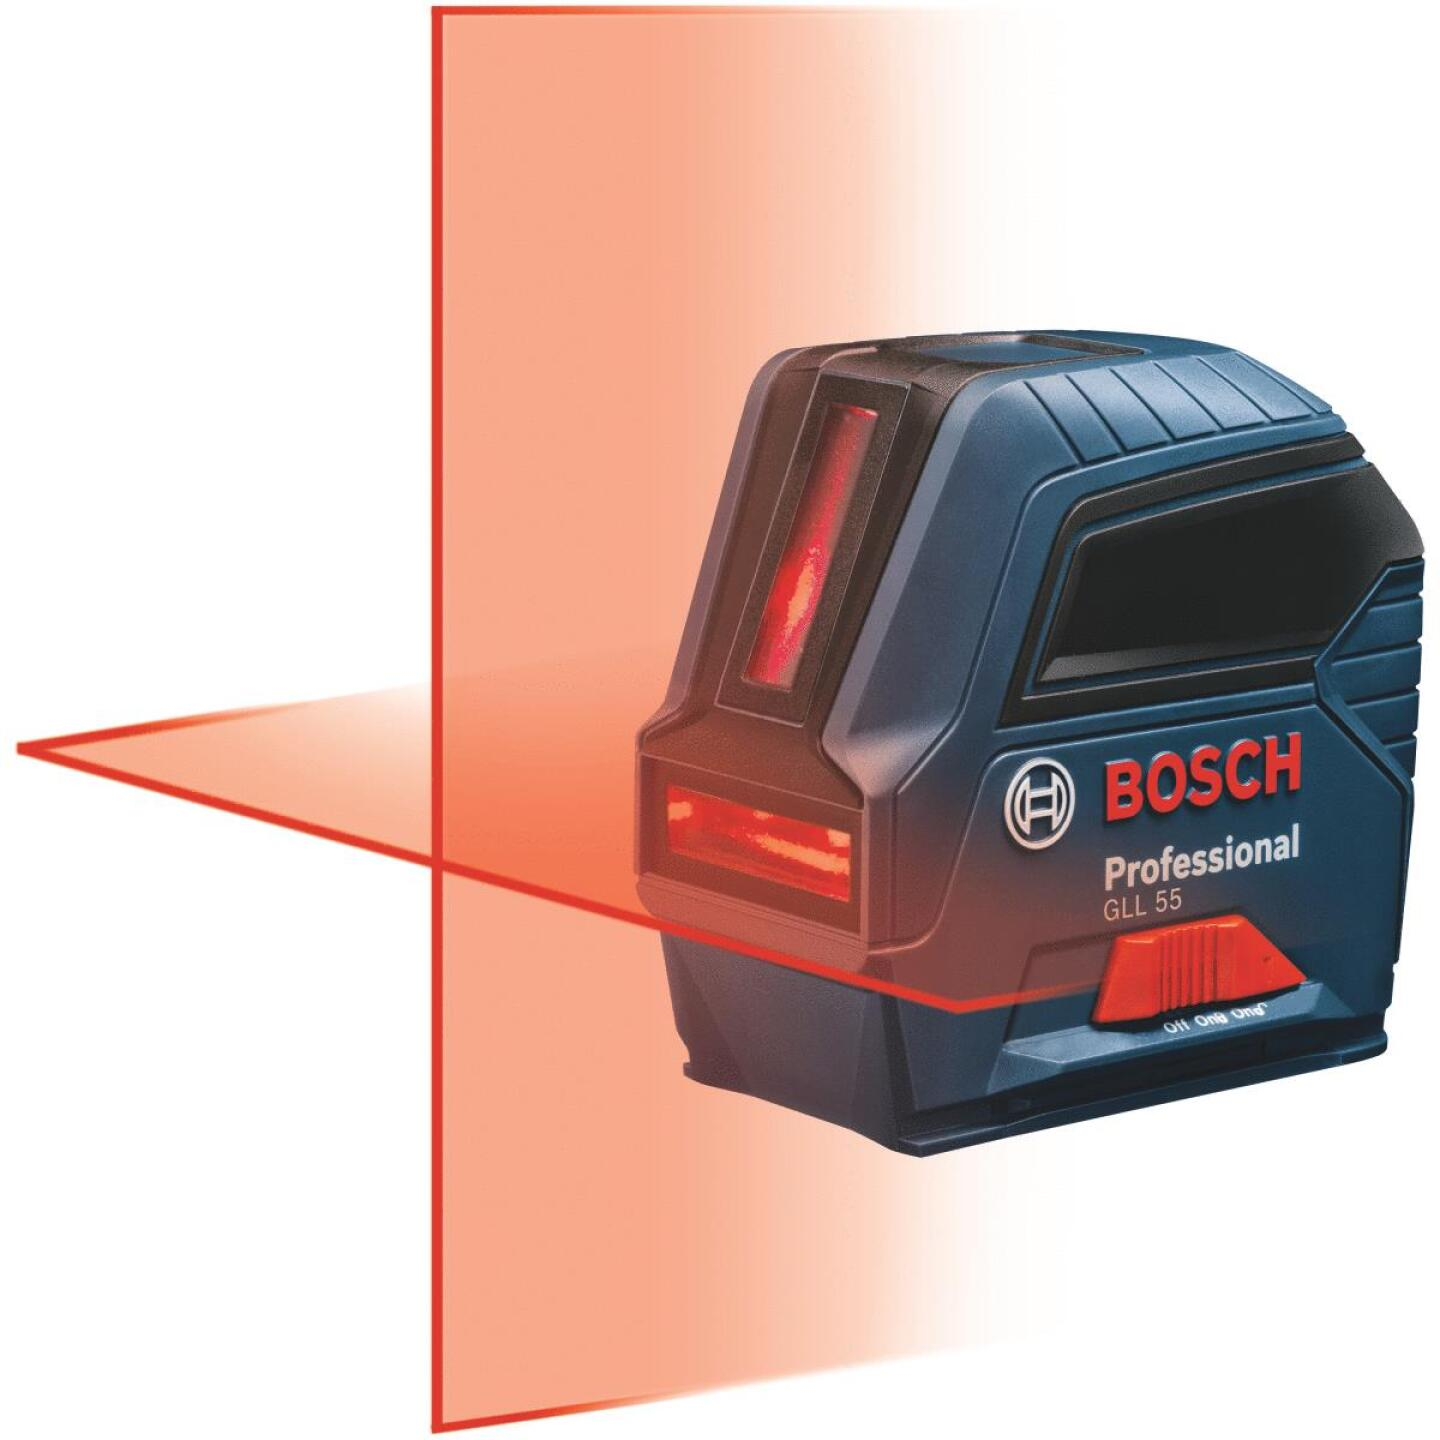 Bosch 50 Ft. Self-Leveling Professional Cross-Line Laser Level Image 1